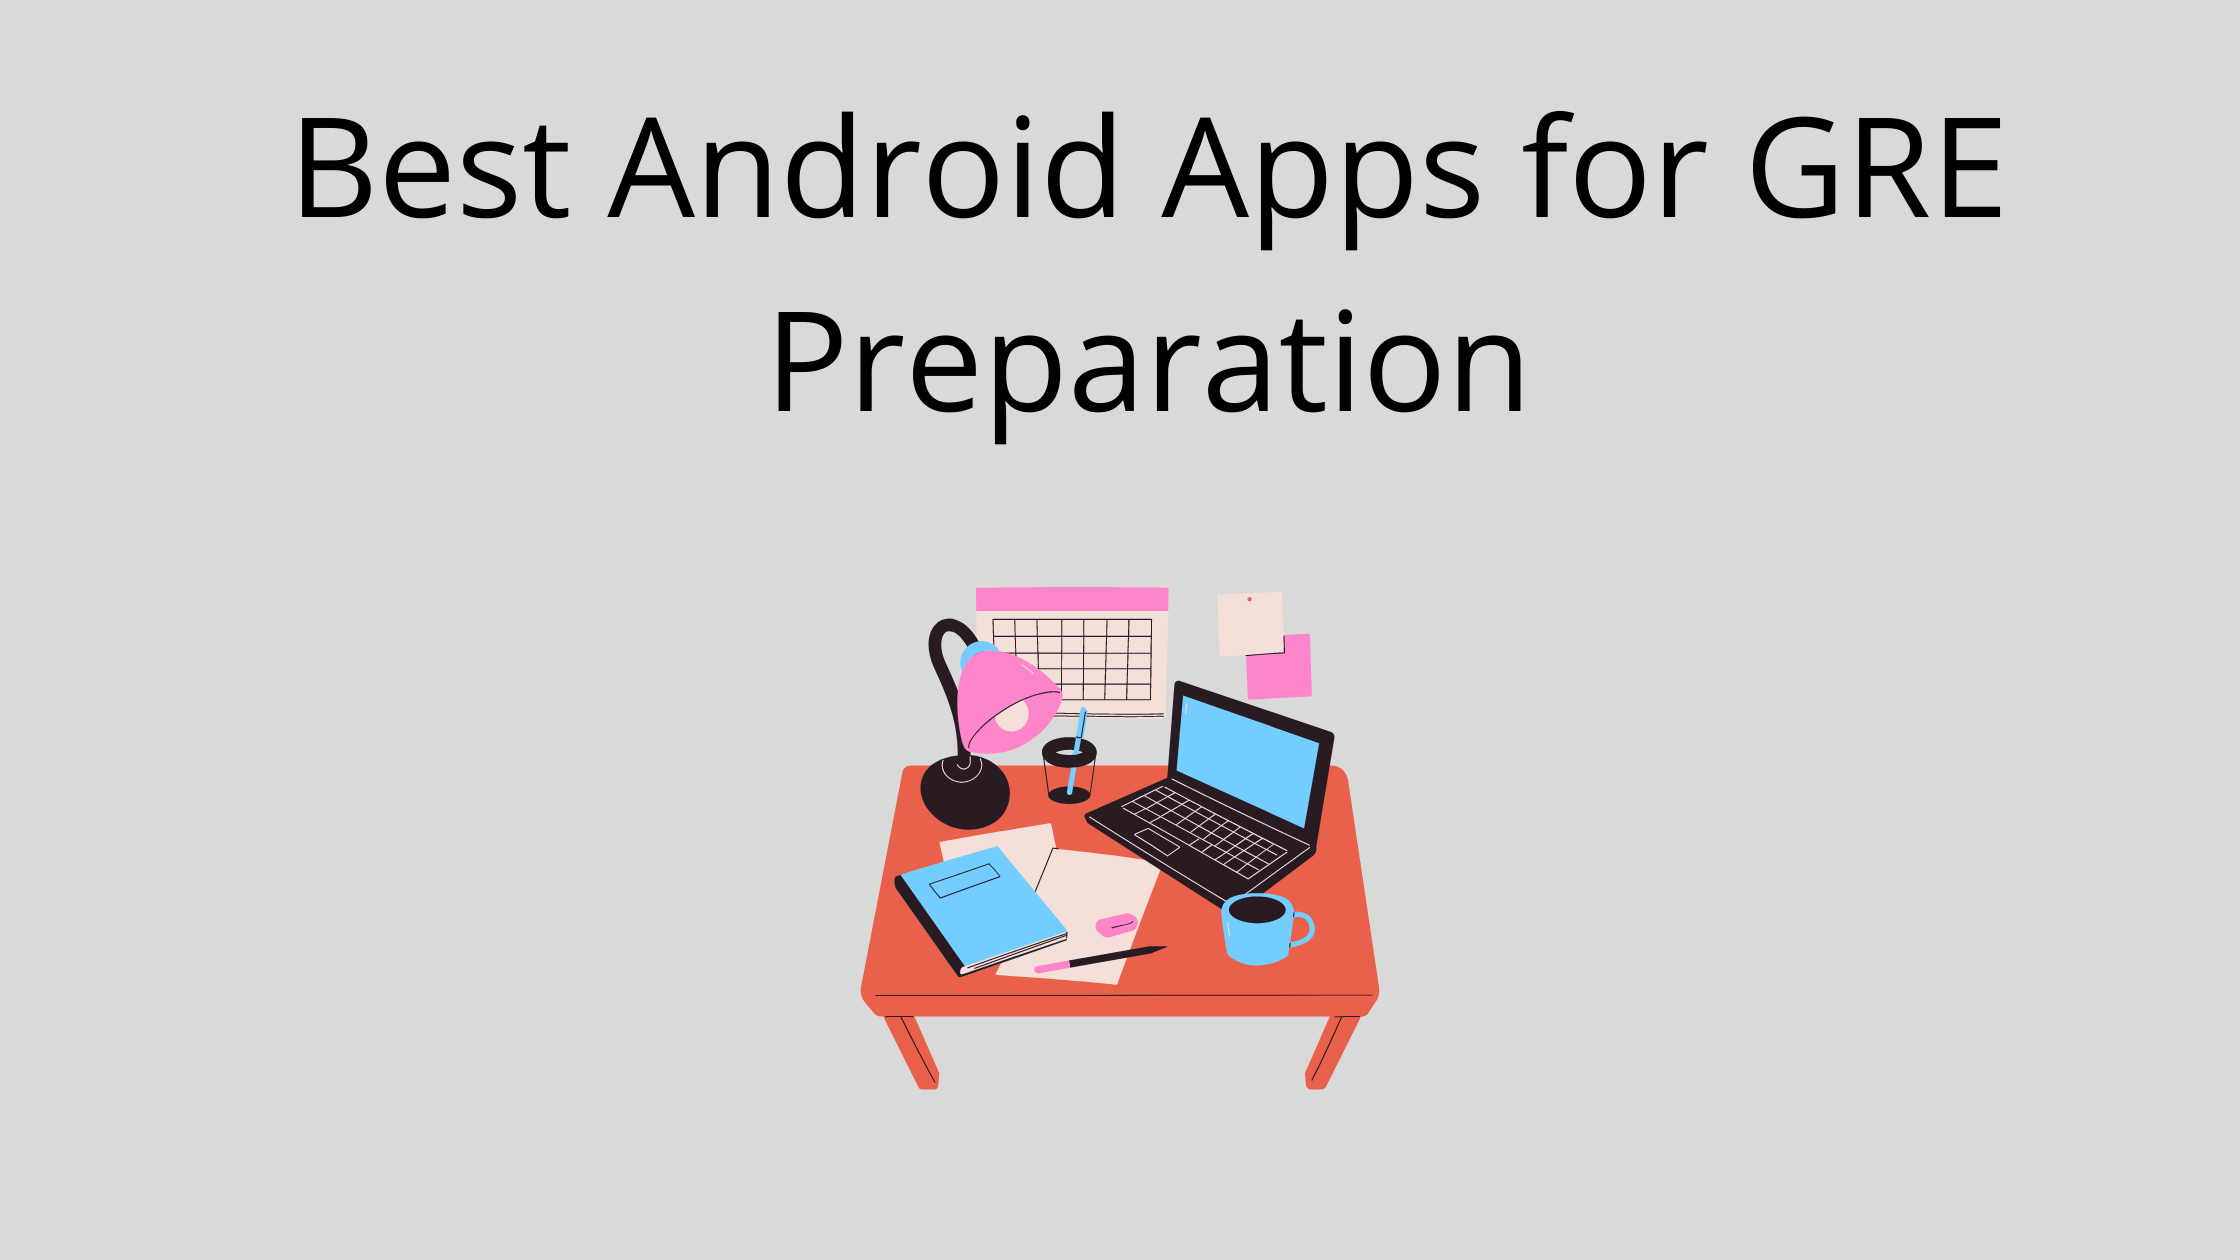 Best Android Apps for GRE Preparation